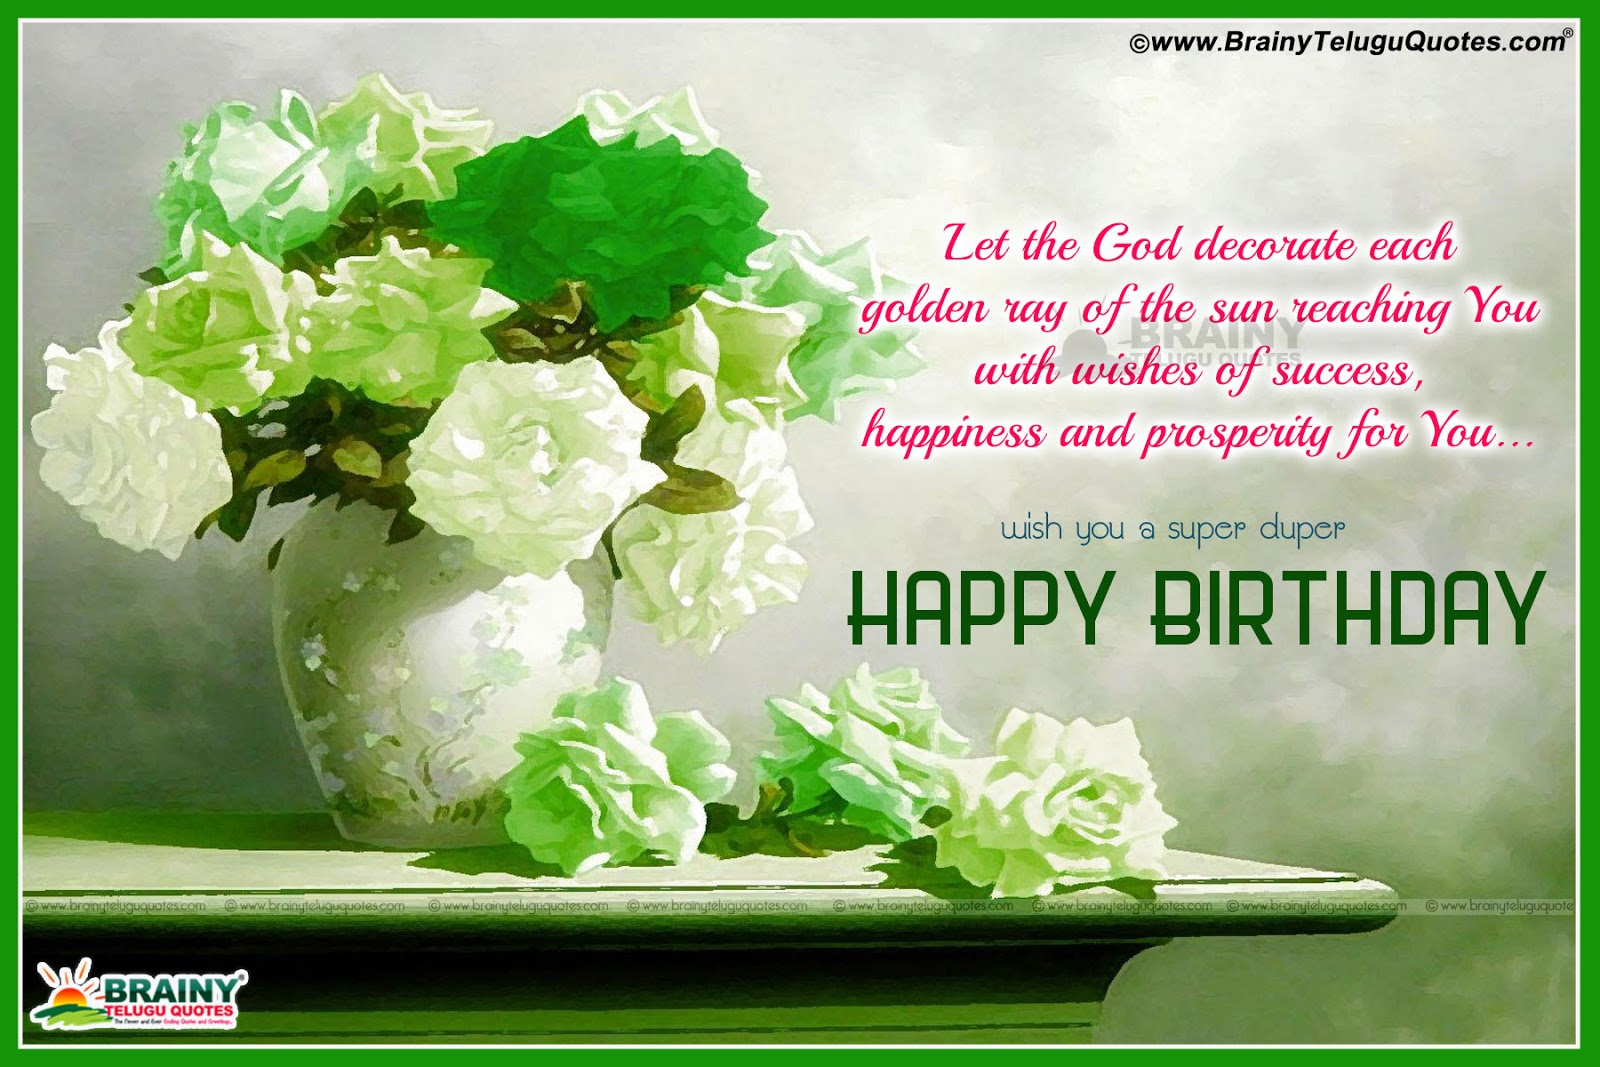 Best Birthday Quotes For Friend In English: Best Friend Birthday Quotes And Wishes Gifts Greetings In